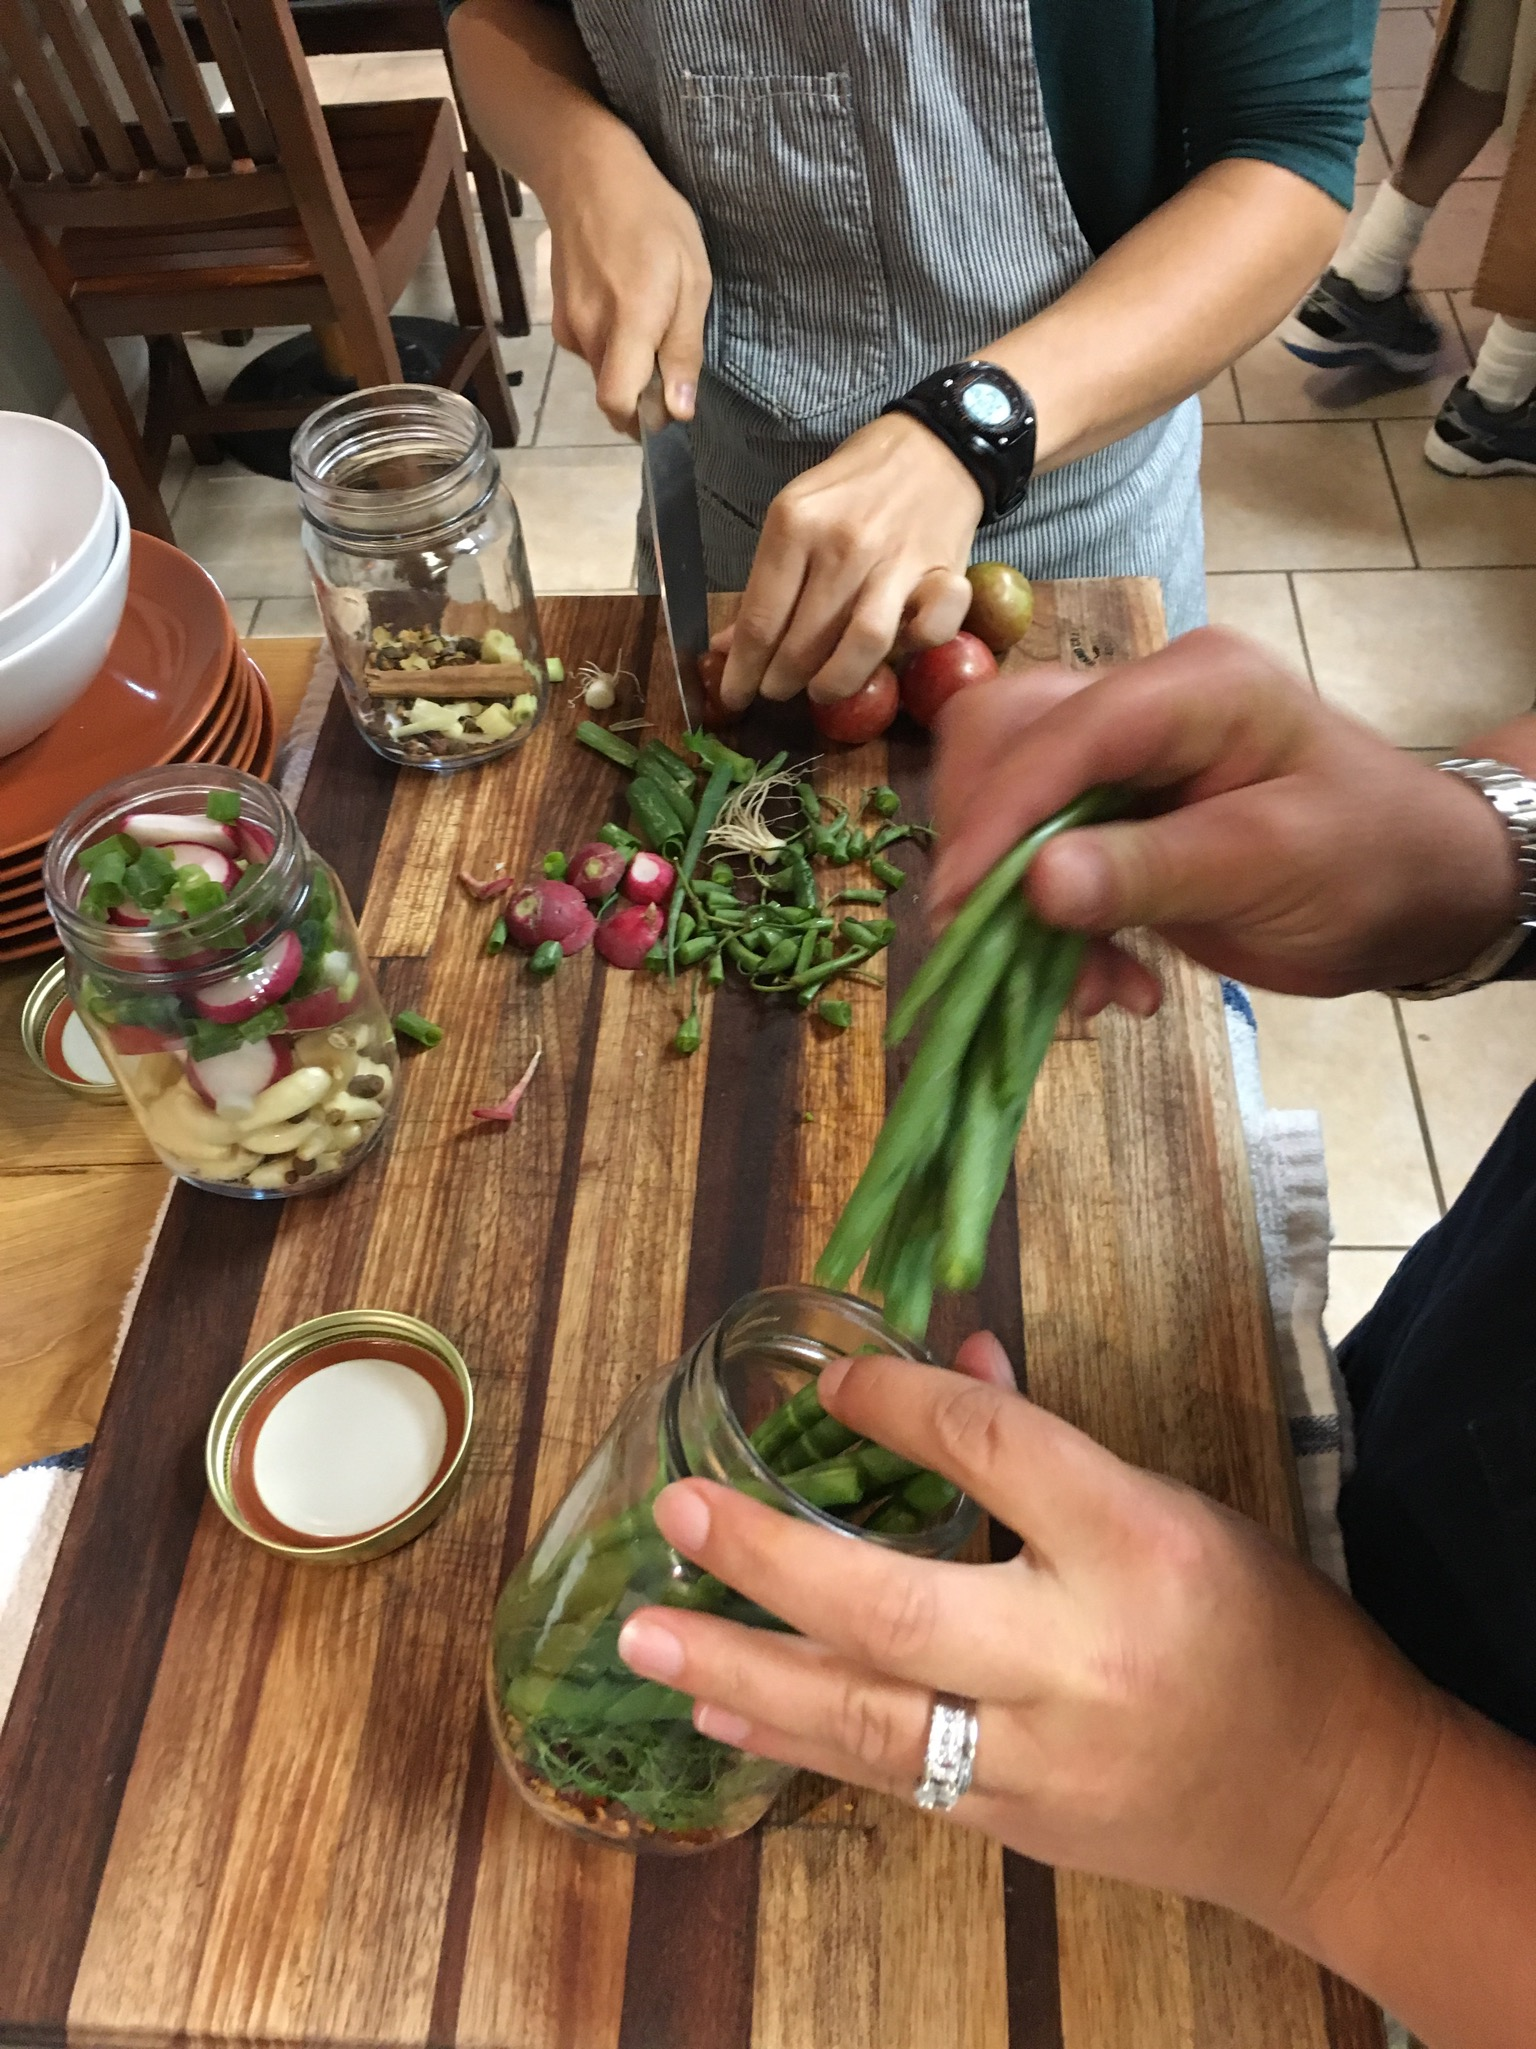 get hands-on in the kitchen - Our private cooking classes are designed with you in mind. We can cover a wide range of topics - from mastering specific techniques to anchoring the cooking basics to international flavors.Classes are led by CheFarmer Matthew and Food Alchemist Jovan.